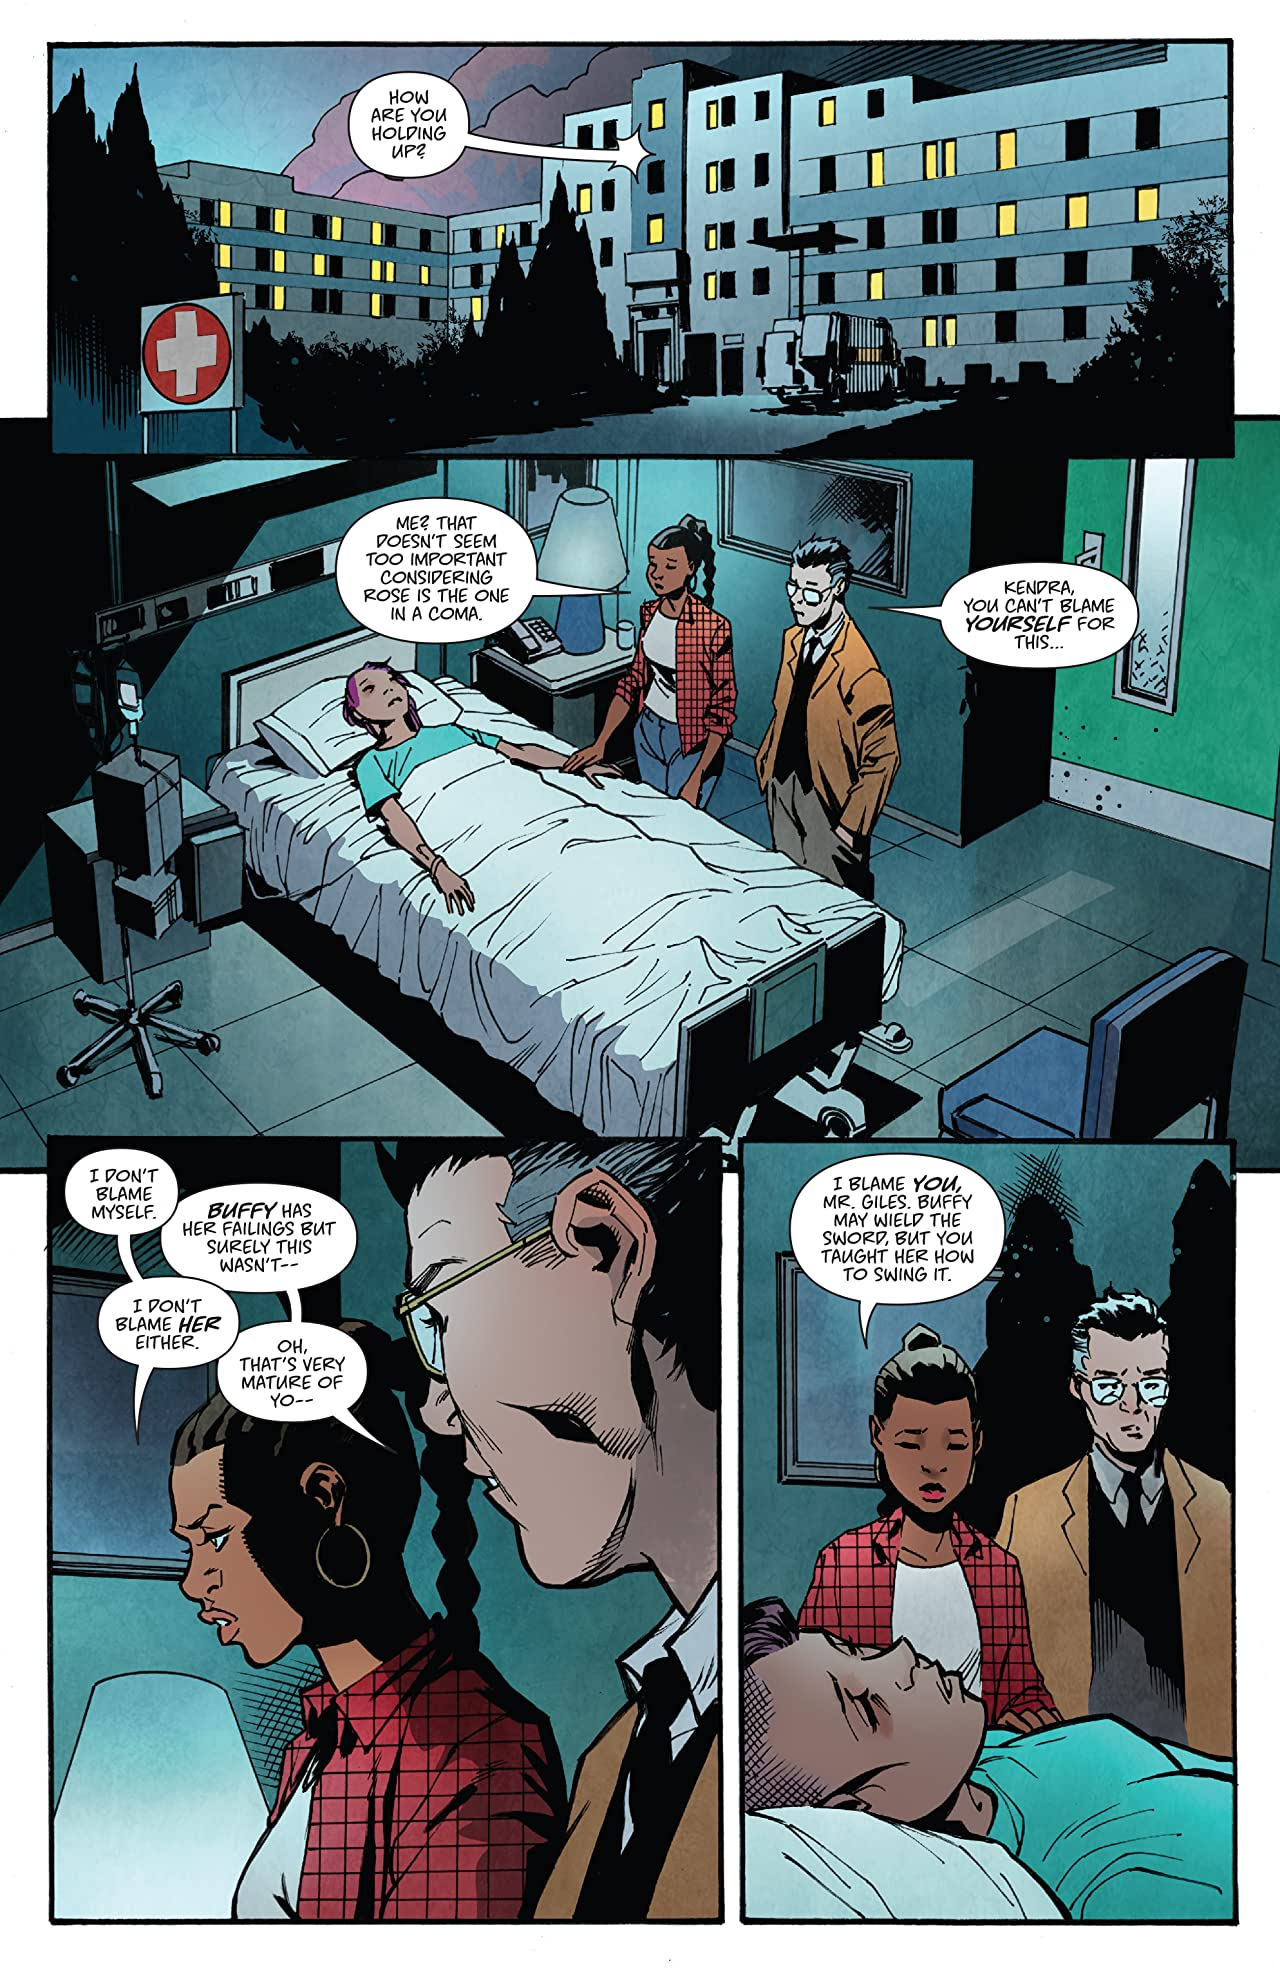 Buffy the Vampire Slayer #16